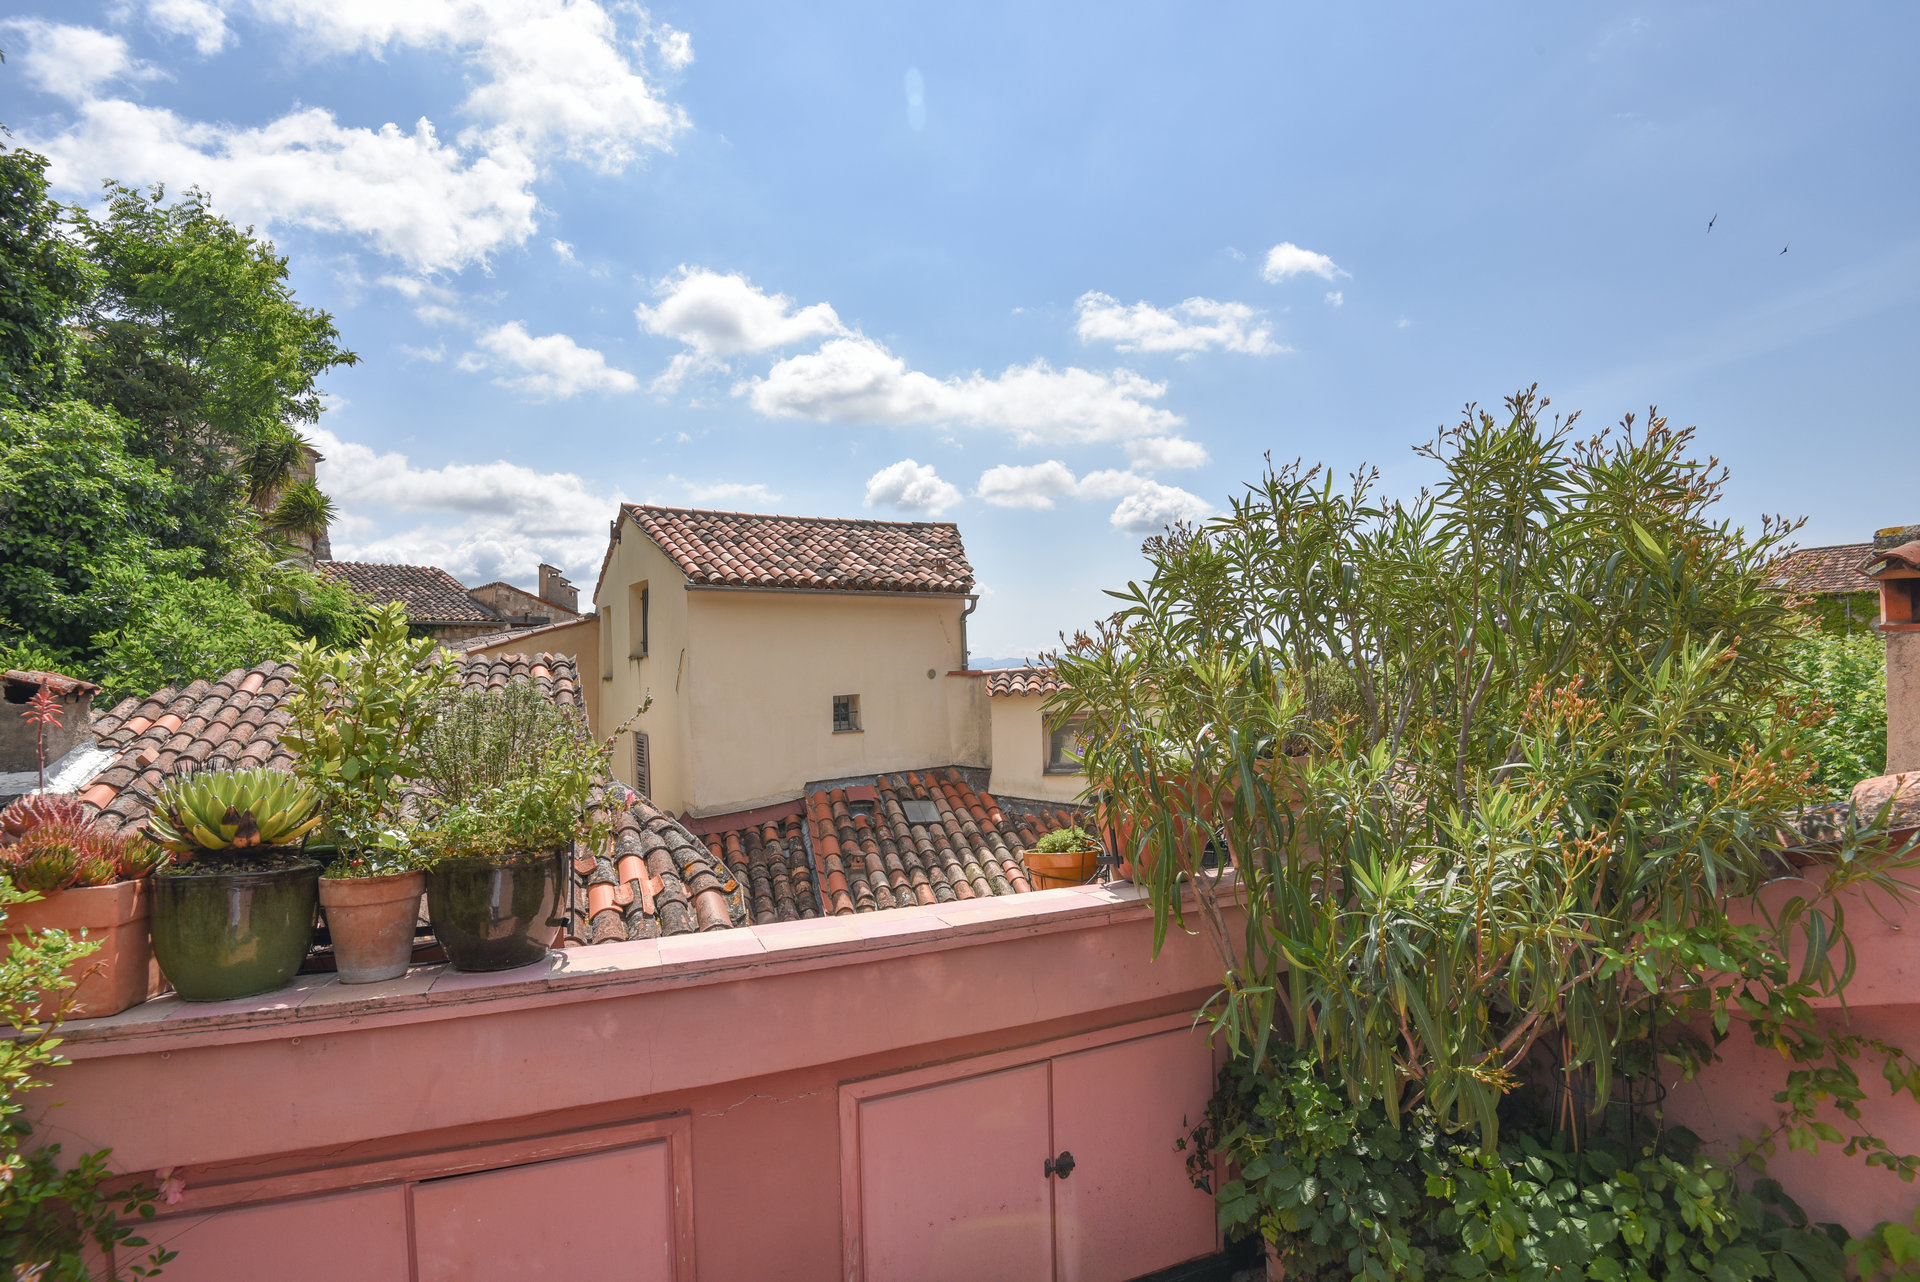 Pays de Fayence house in the village with terrace and view